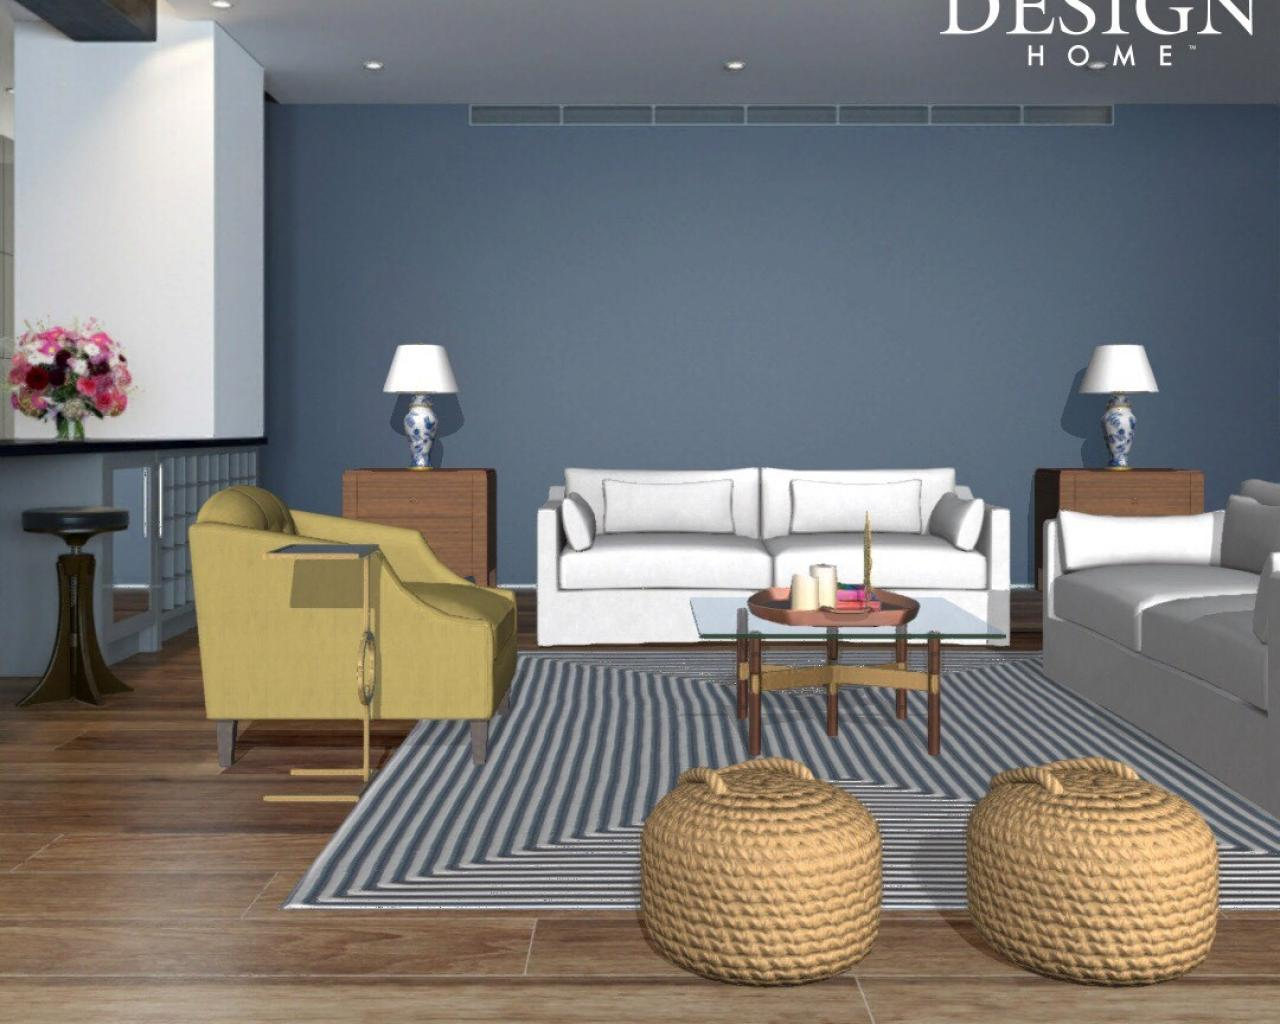 Be An Interior Designer With Design Home App Hgtv S Decorating